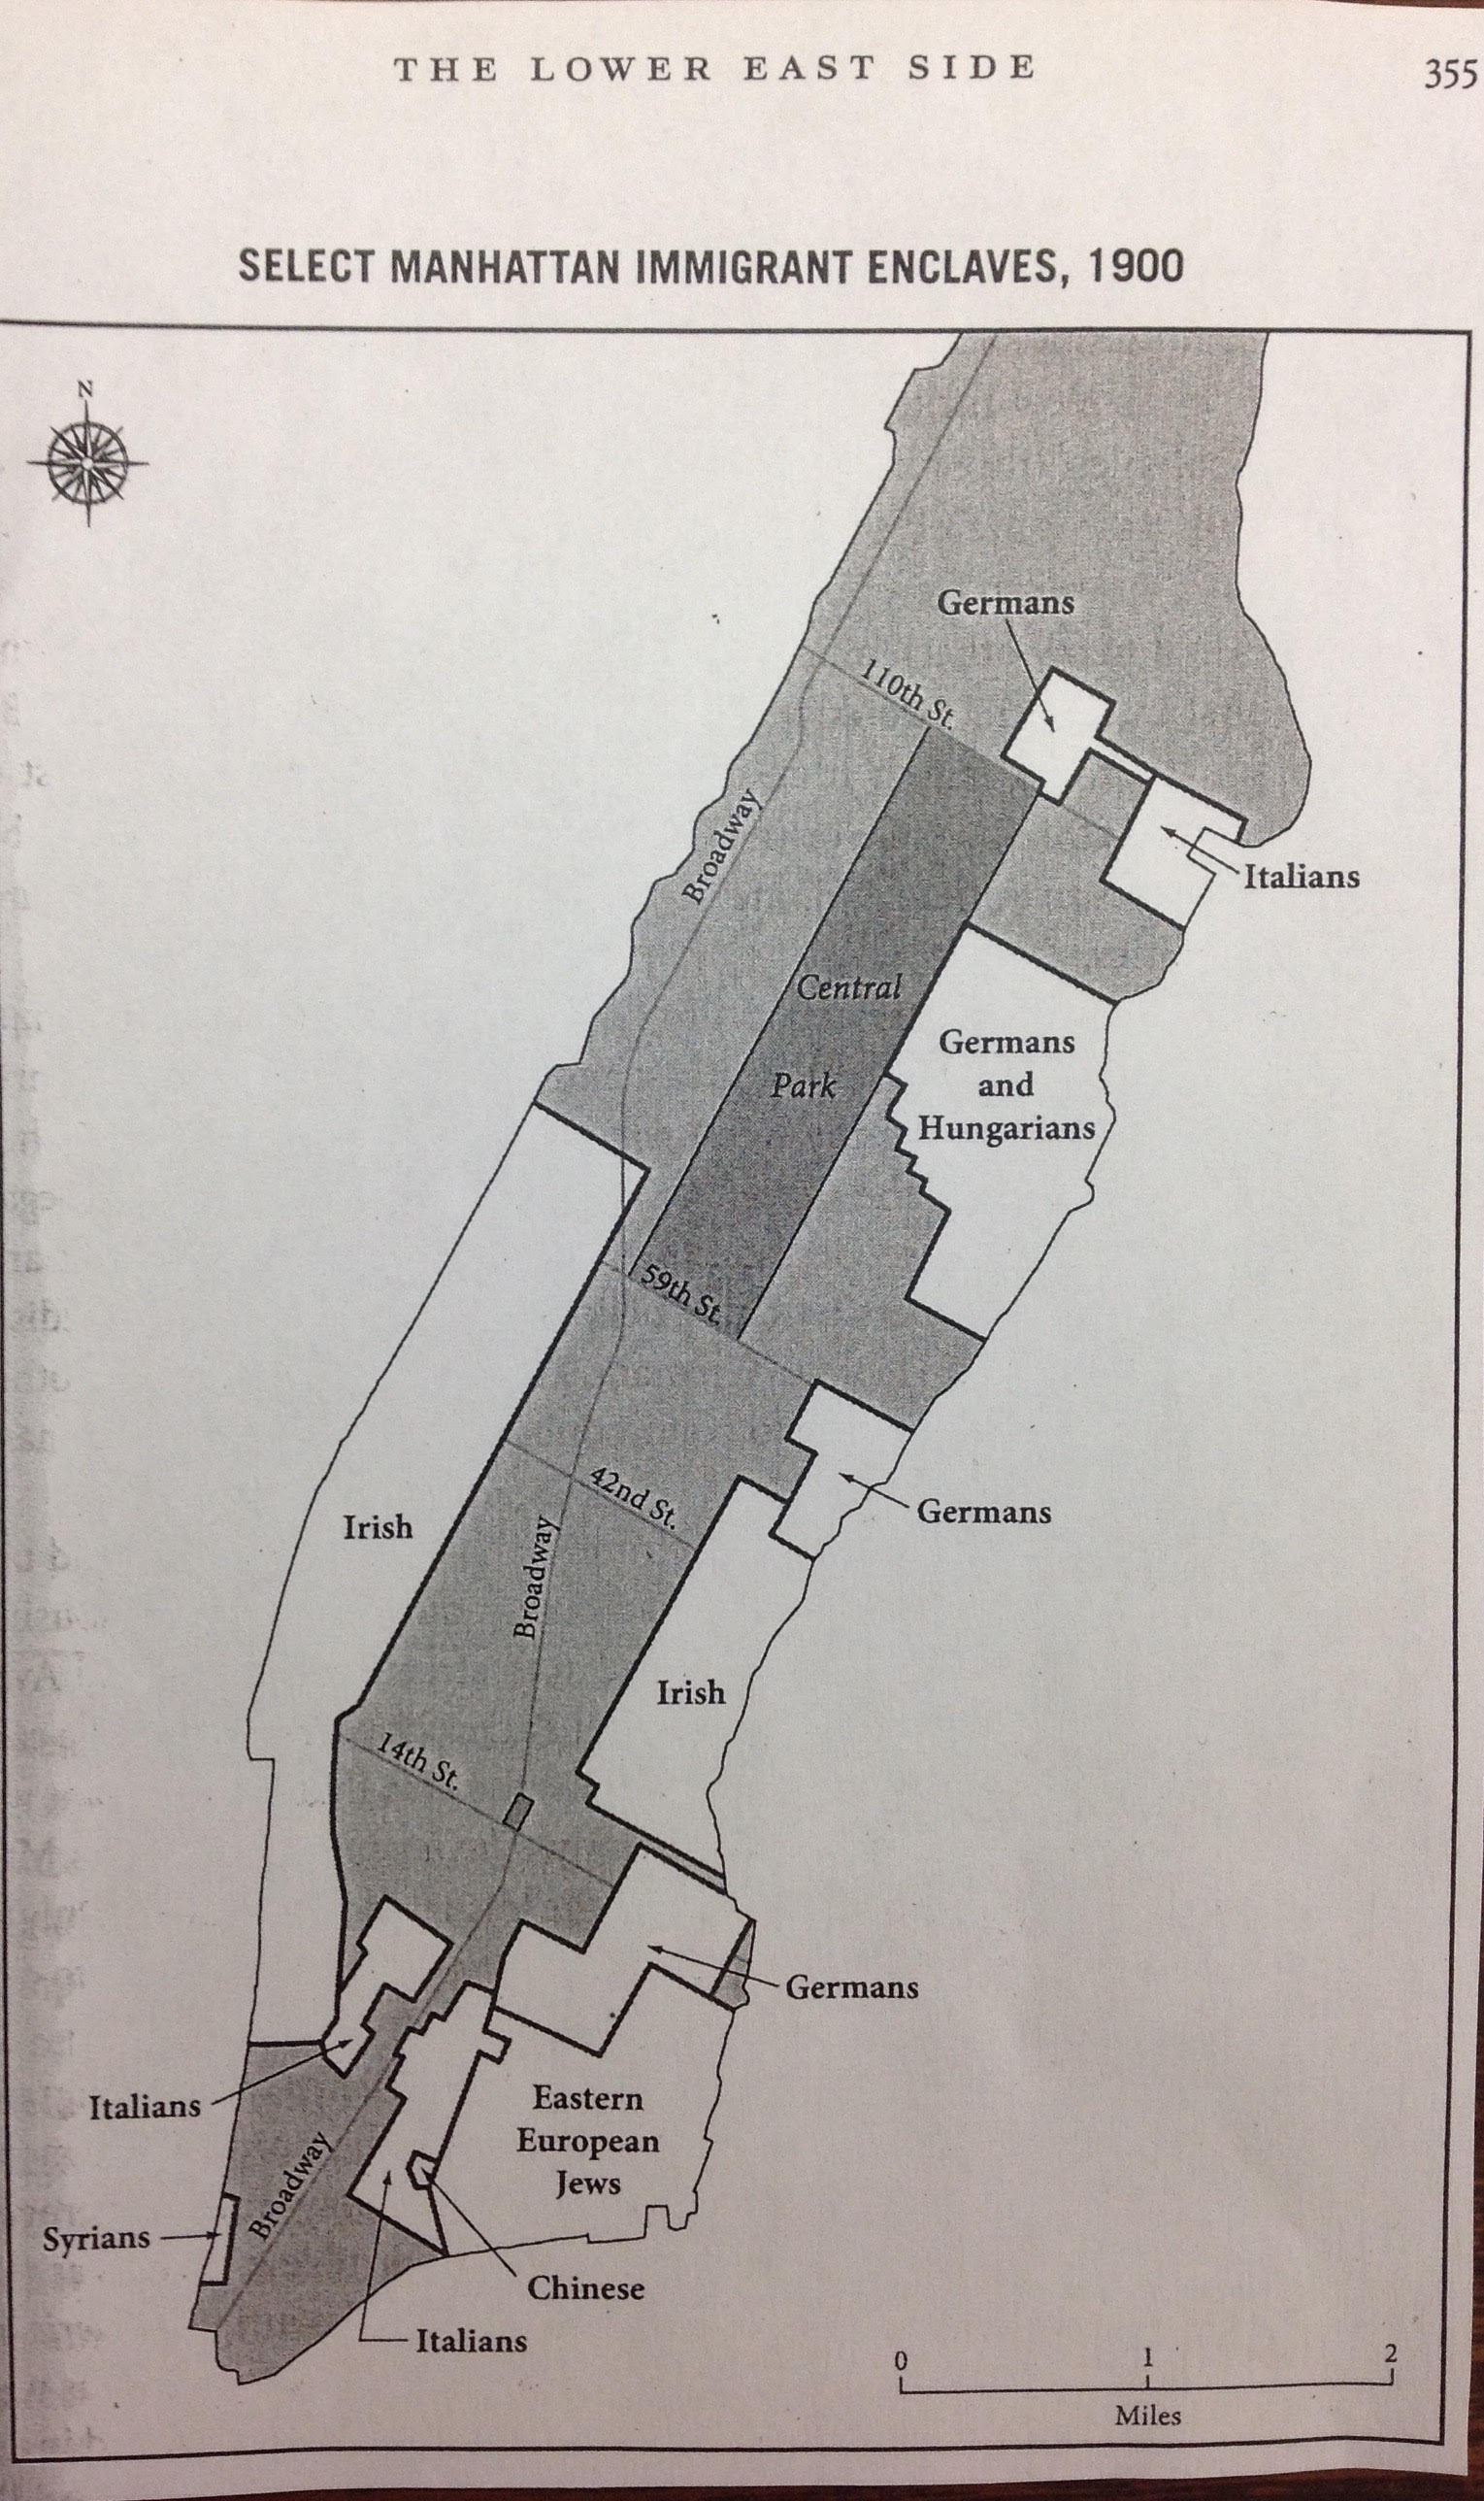 Maps Of New York City Les Young Historians